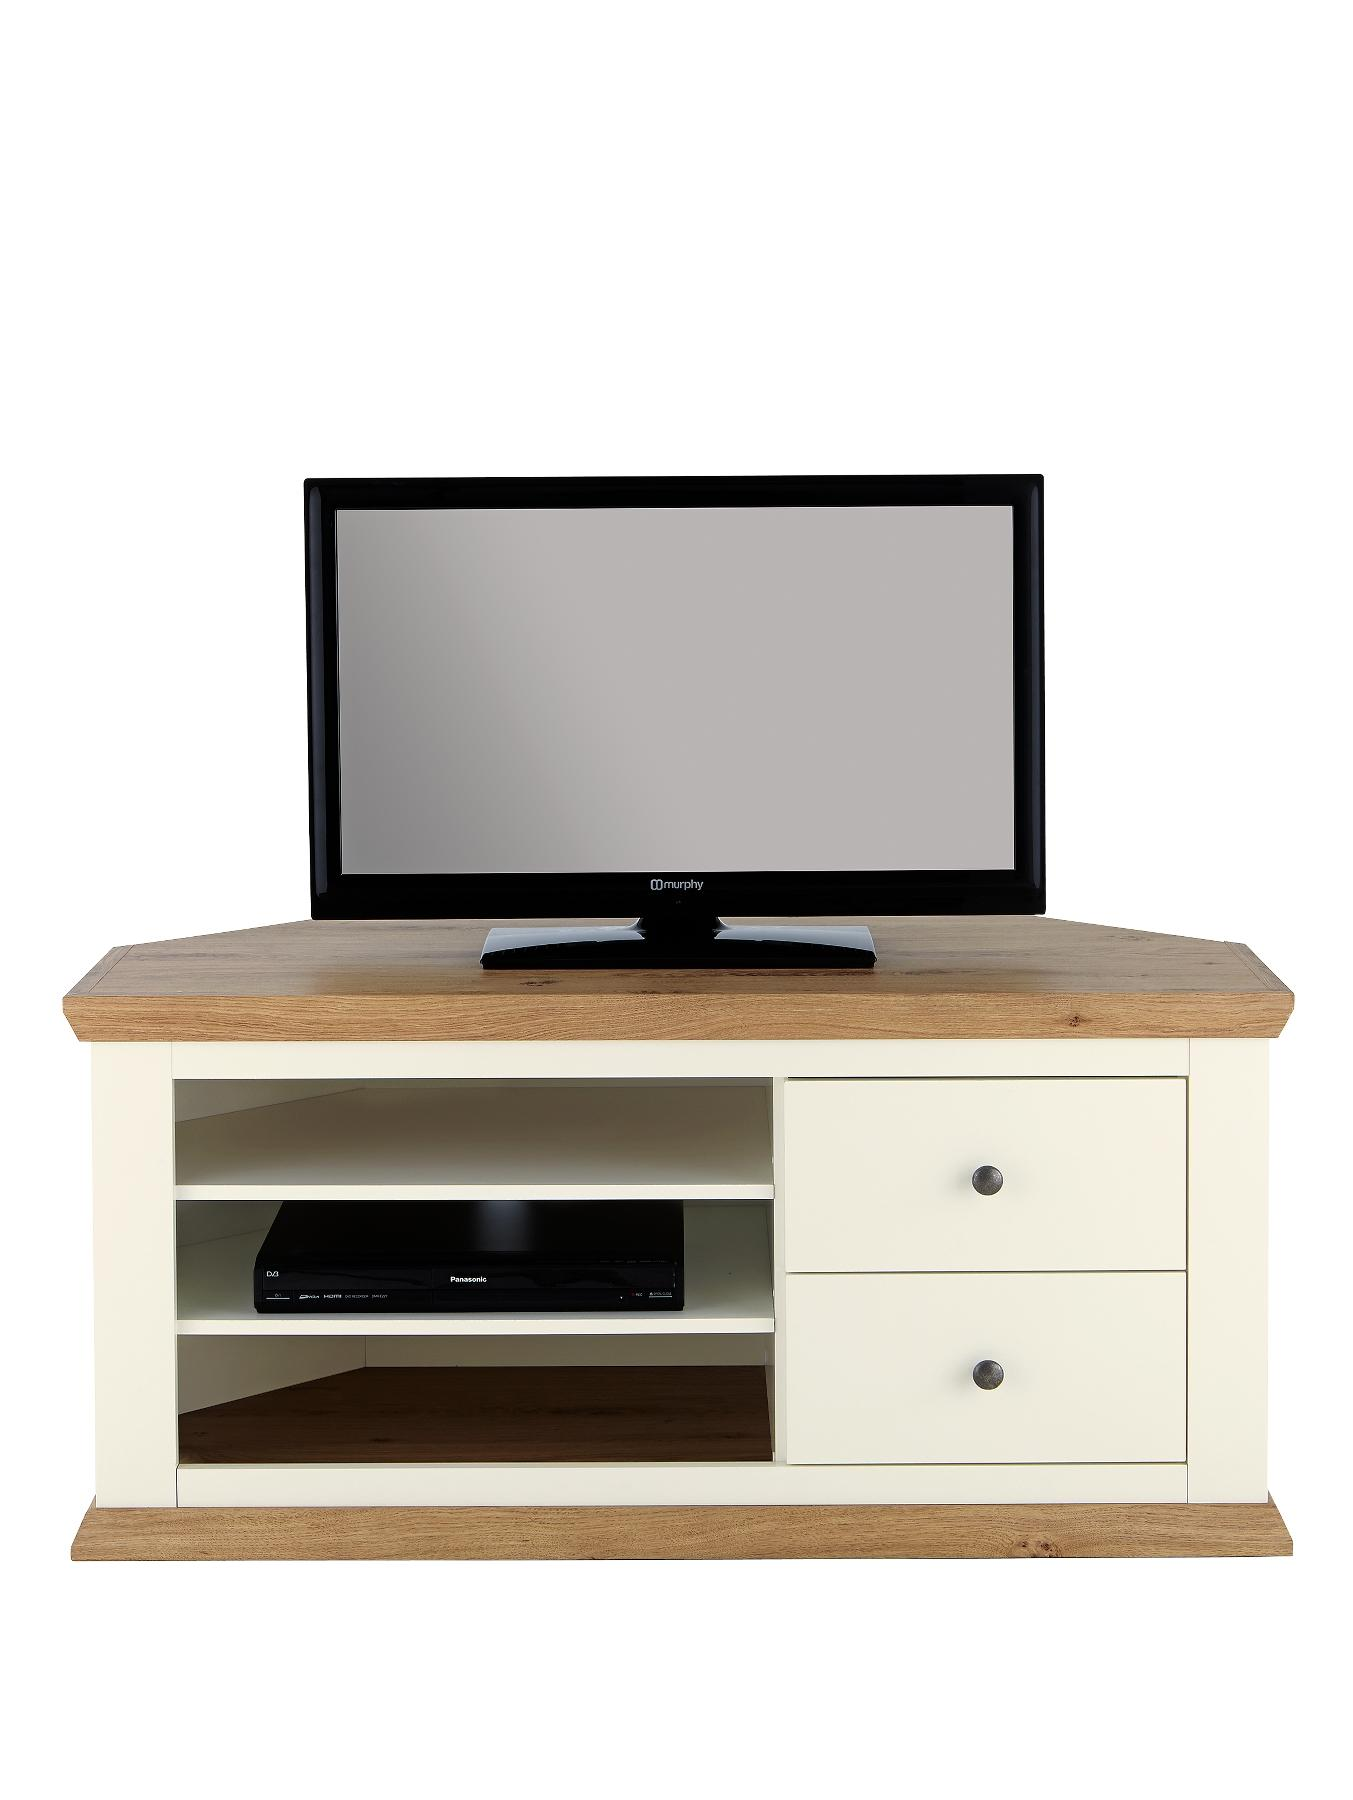 Easton Corner TV Unit - fits up to 50 inch TV - White, White,Cream